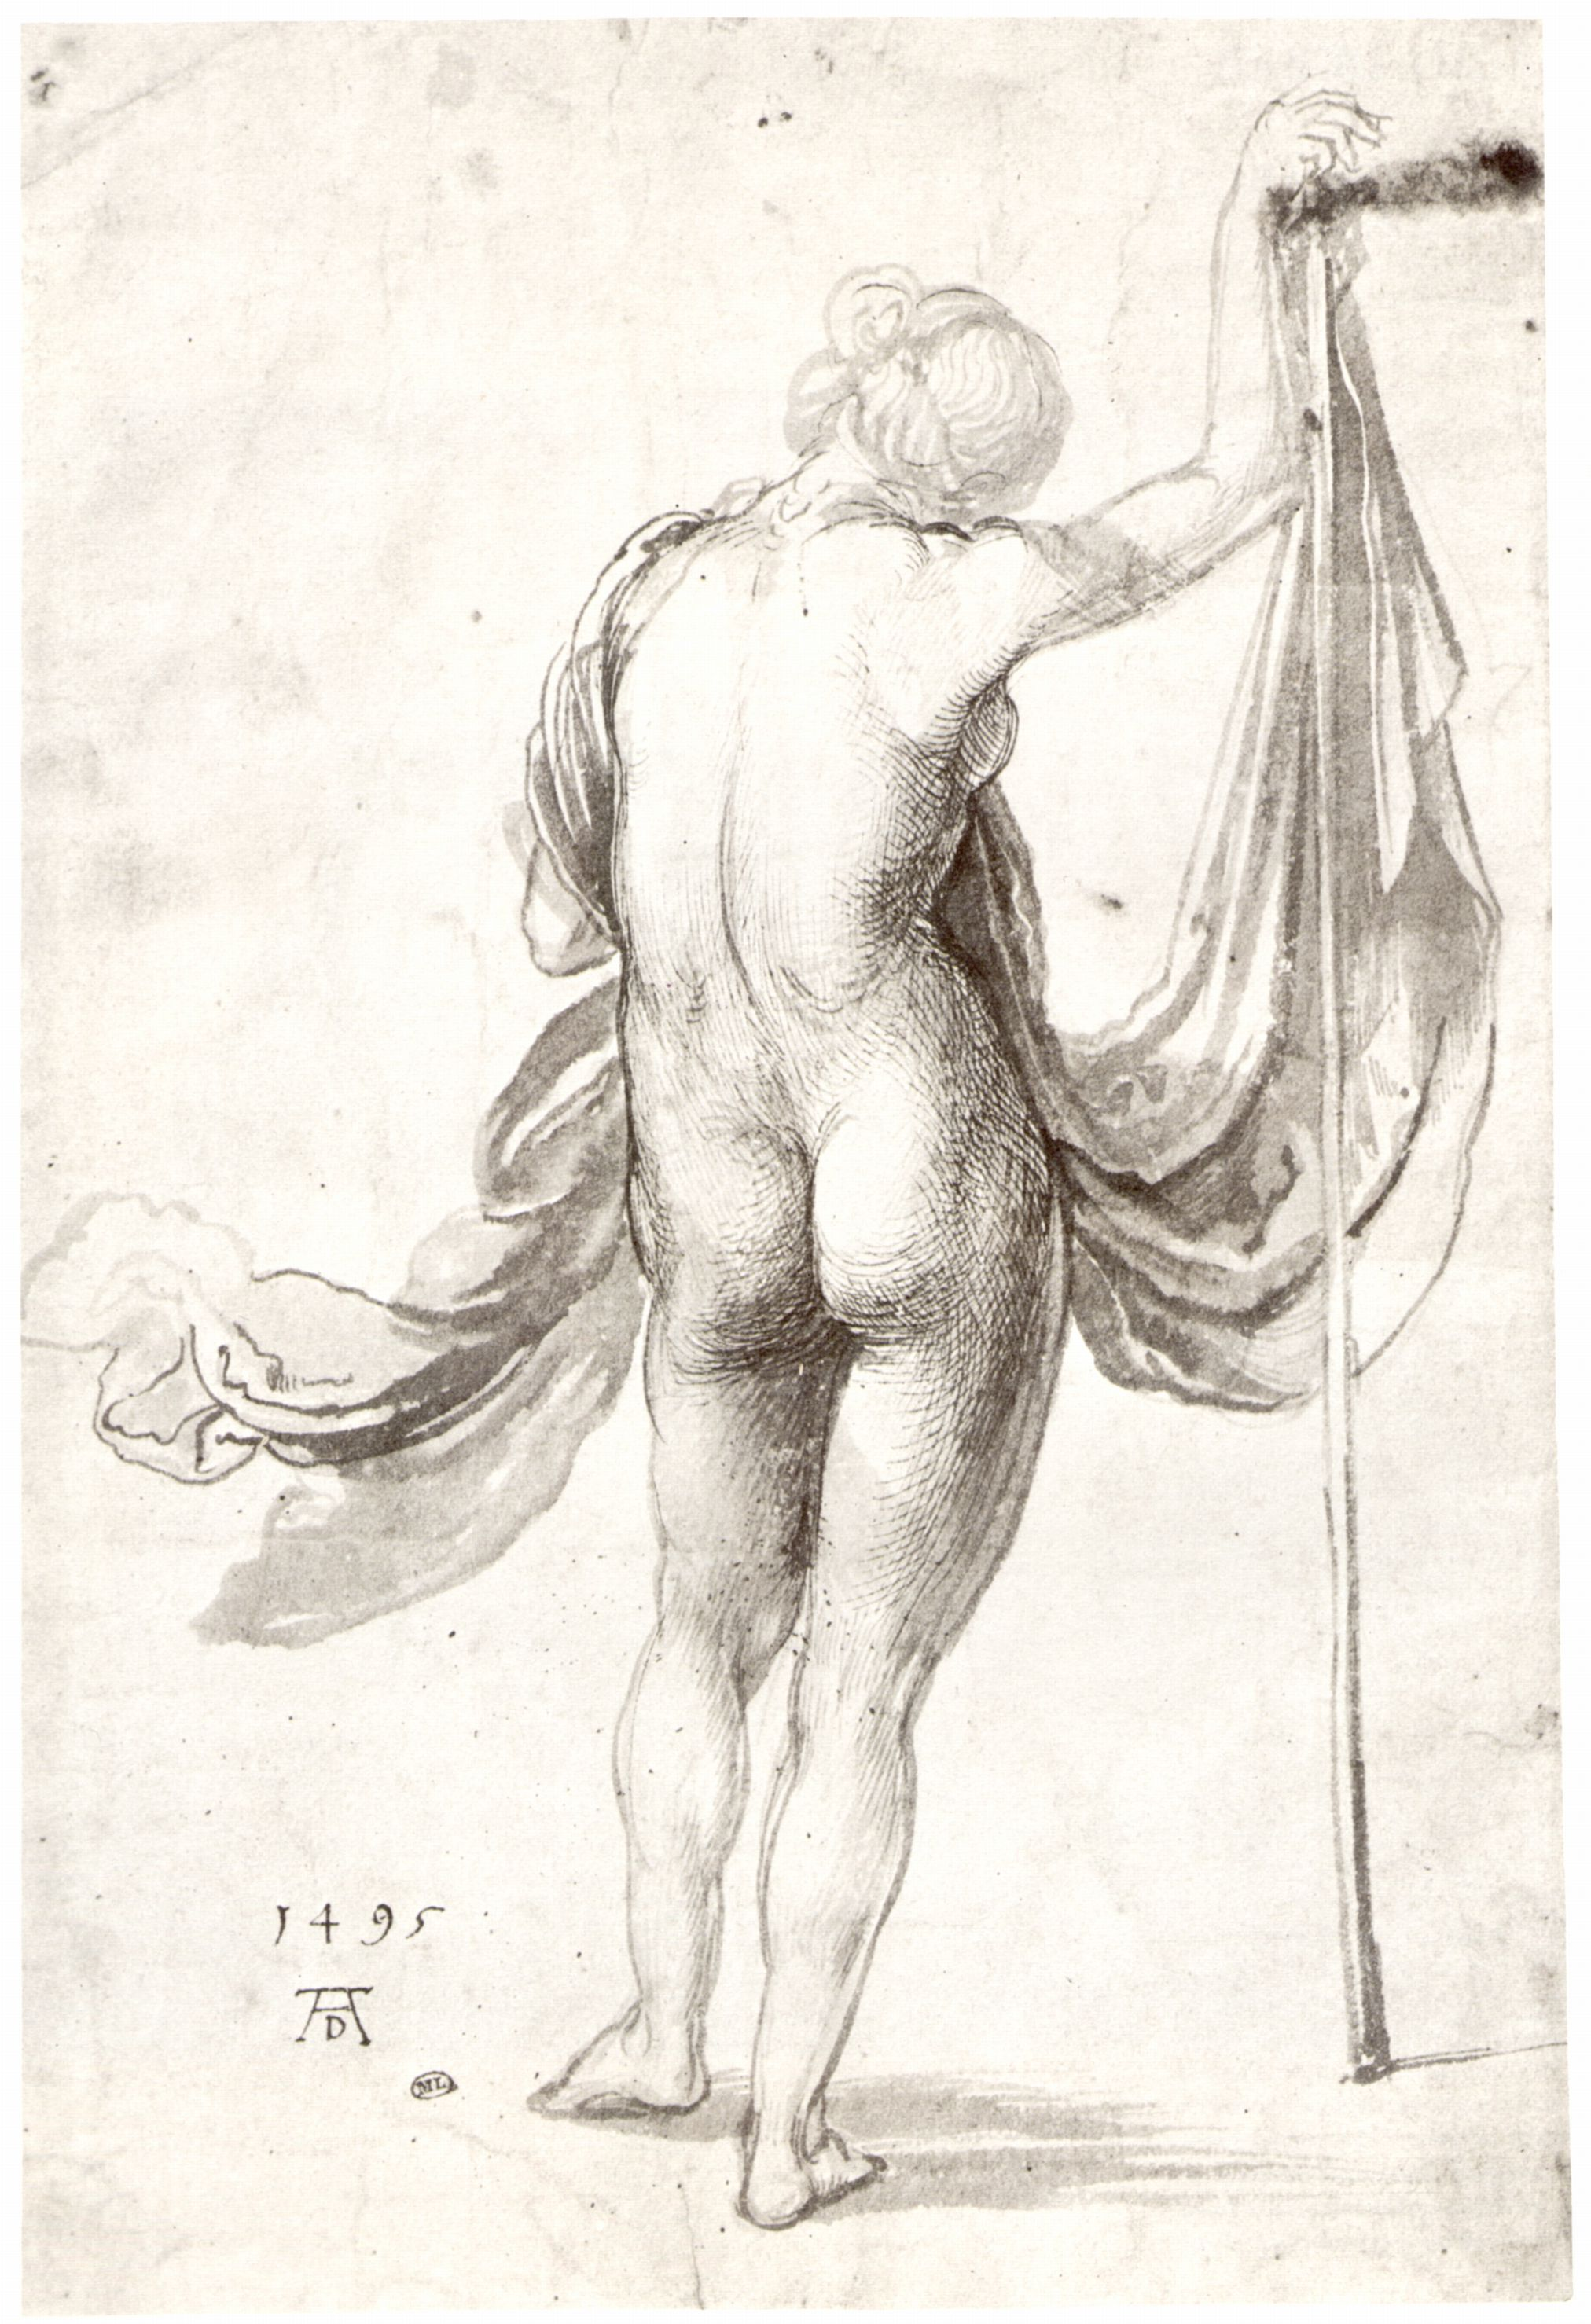 Nude Study (Nude Female From The Back), Albrecht Durer, 1495